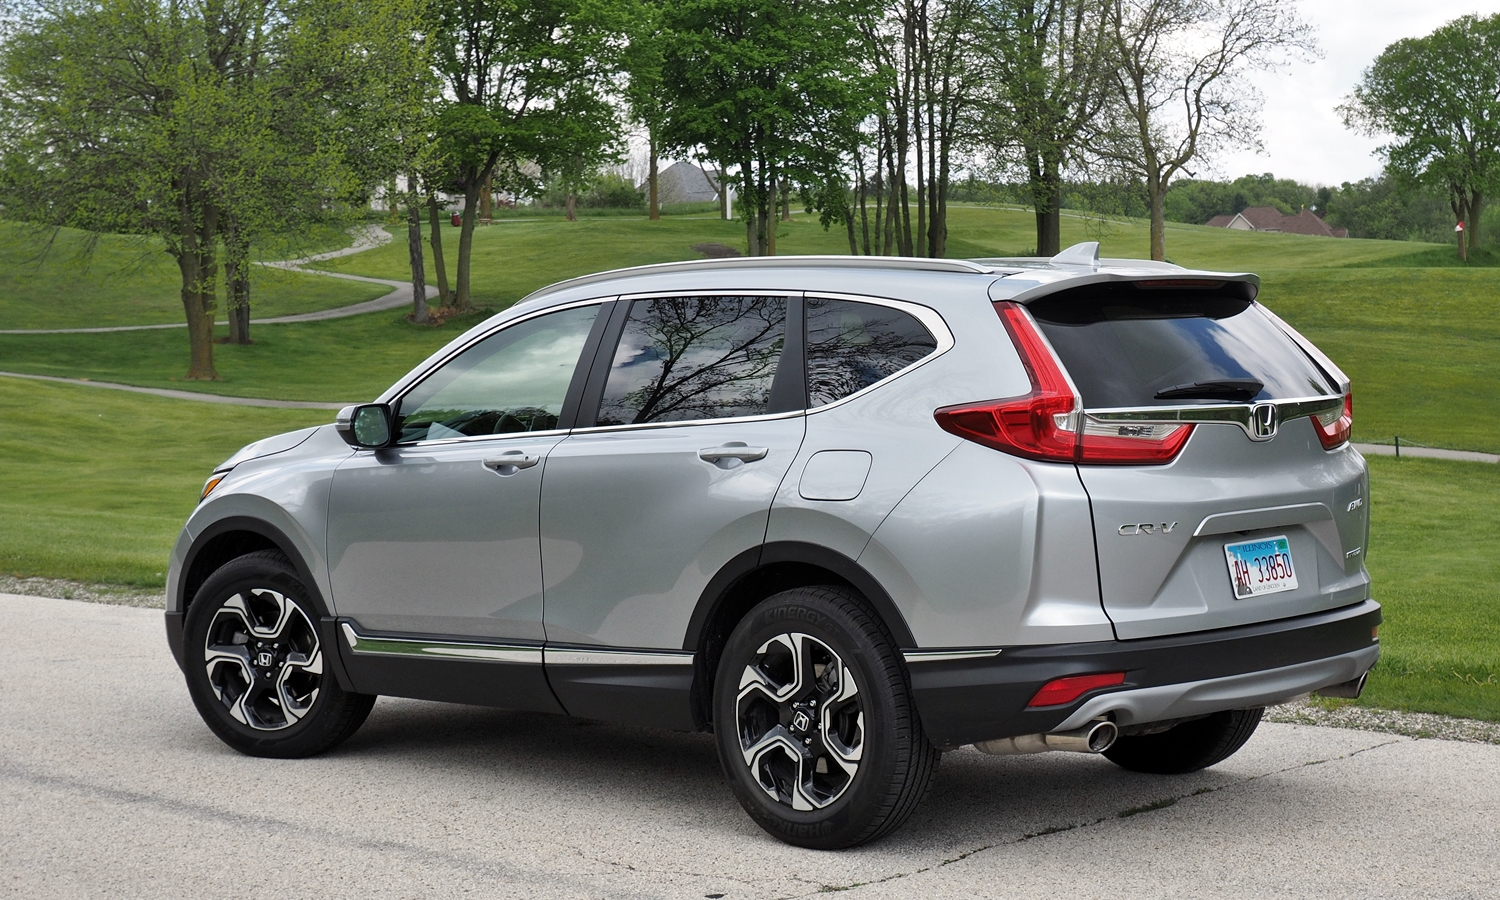 Mazda CX-5 Photos: 2017 Honda CR-V rear quarter